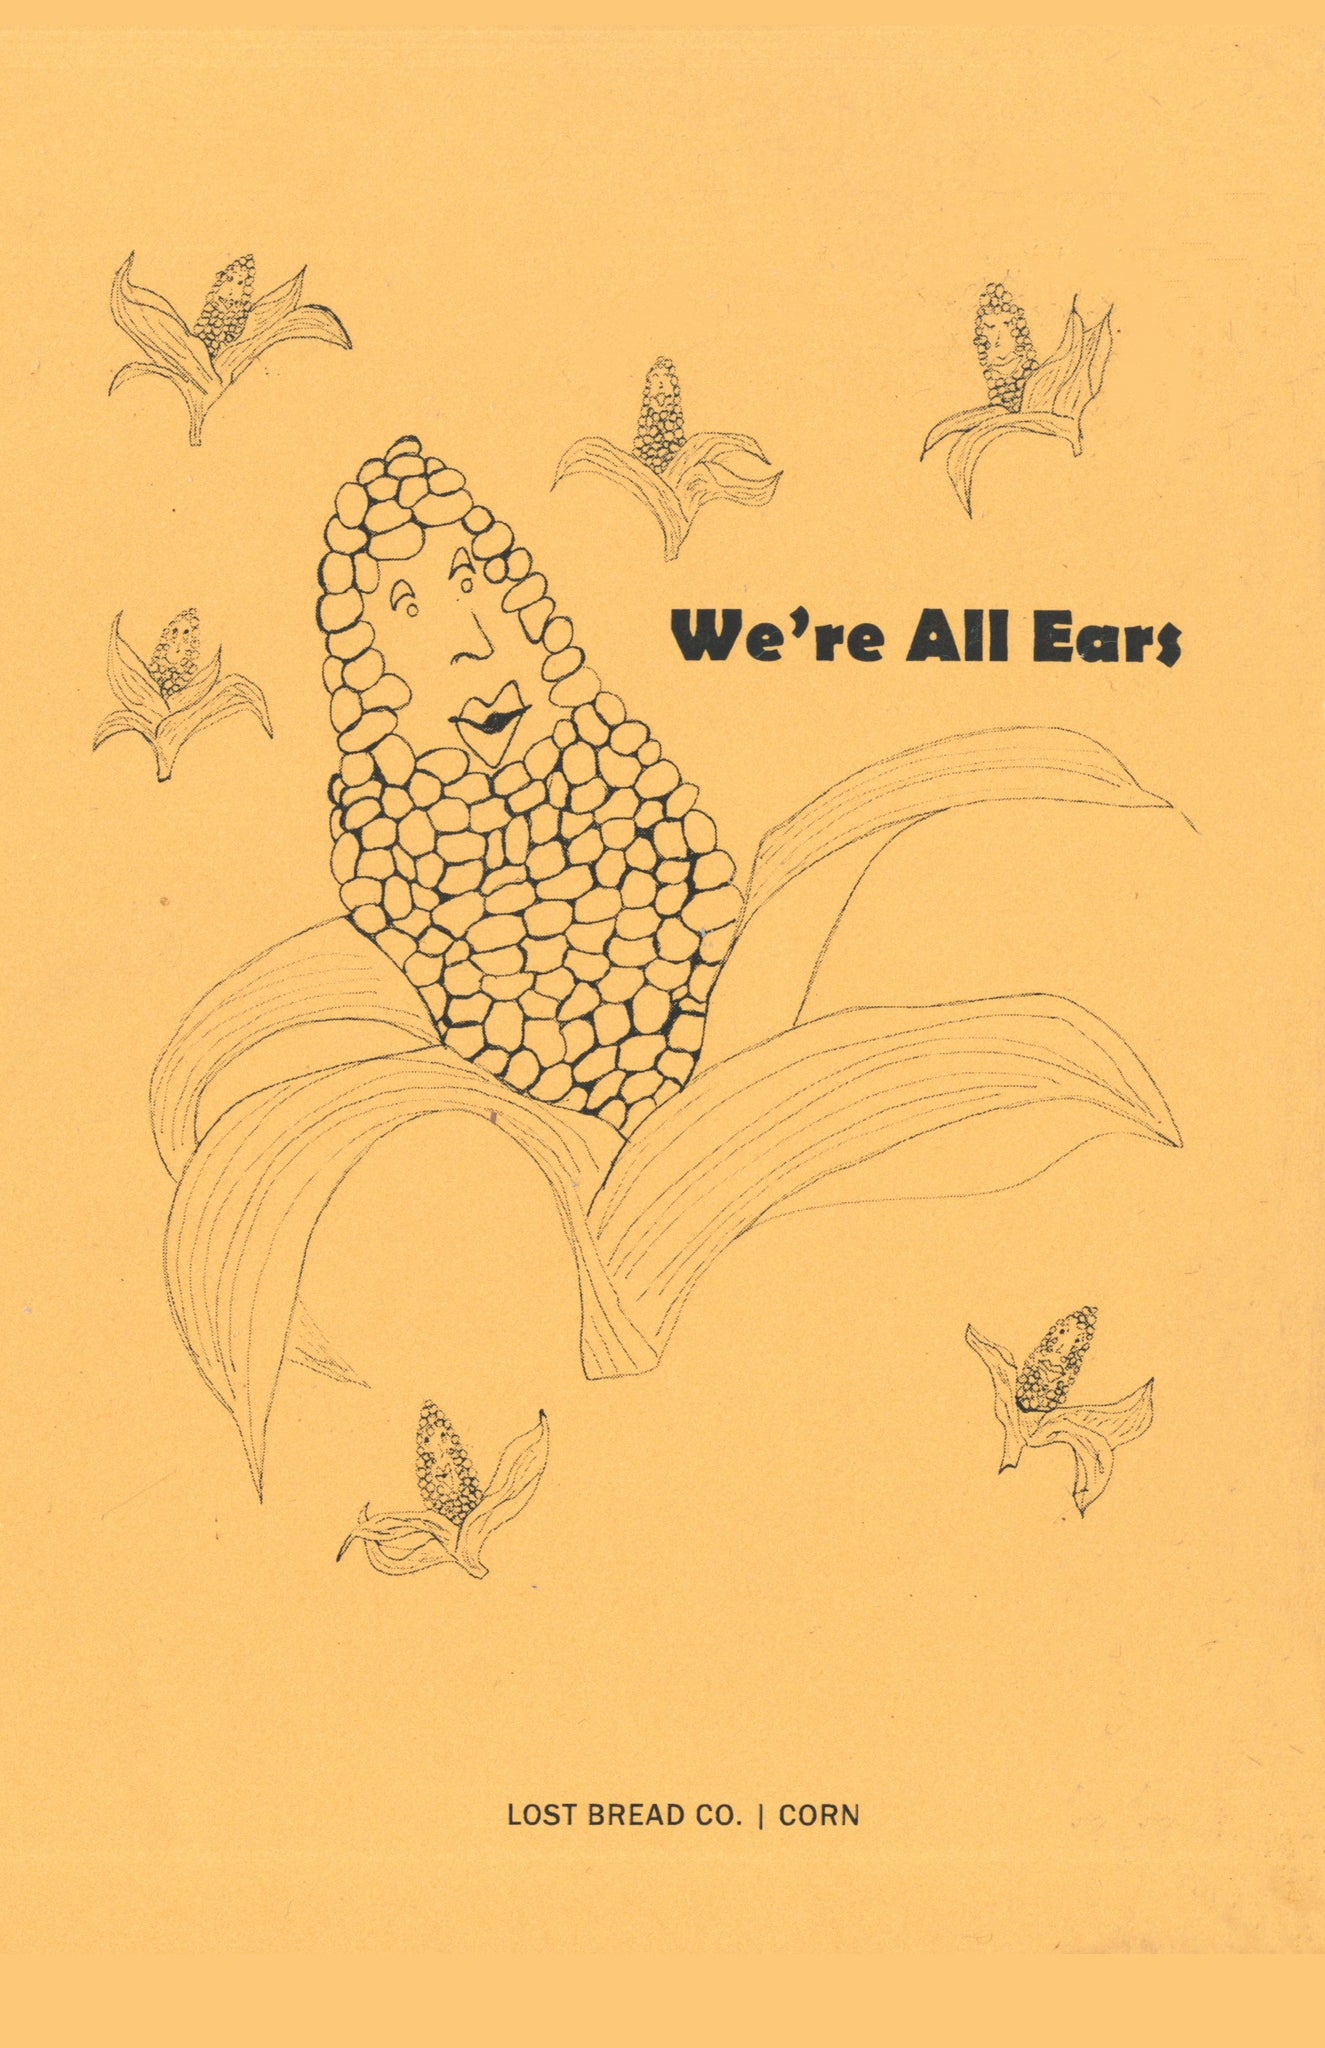 We're All Ears